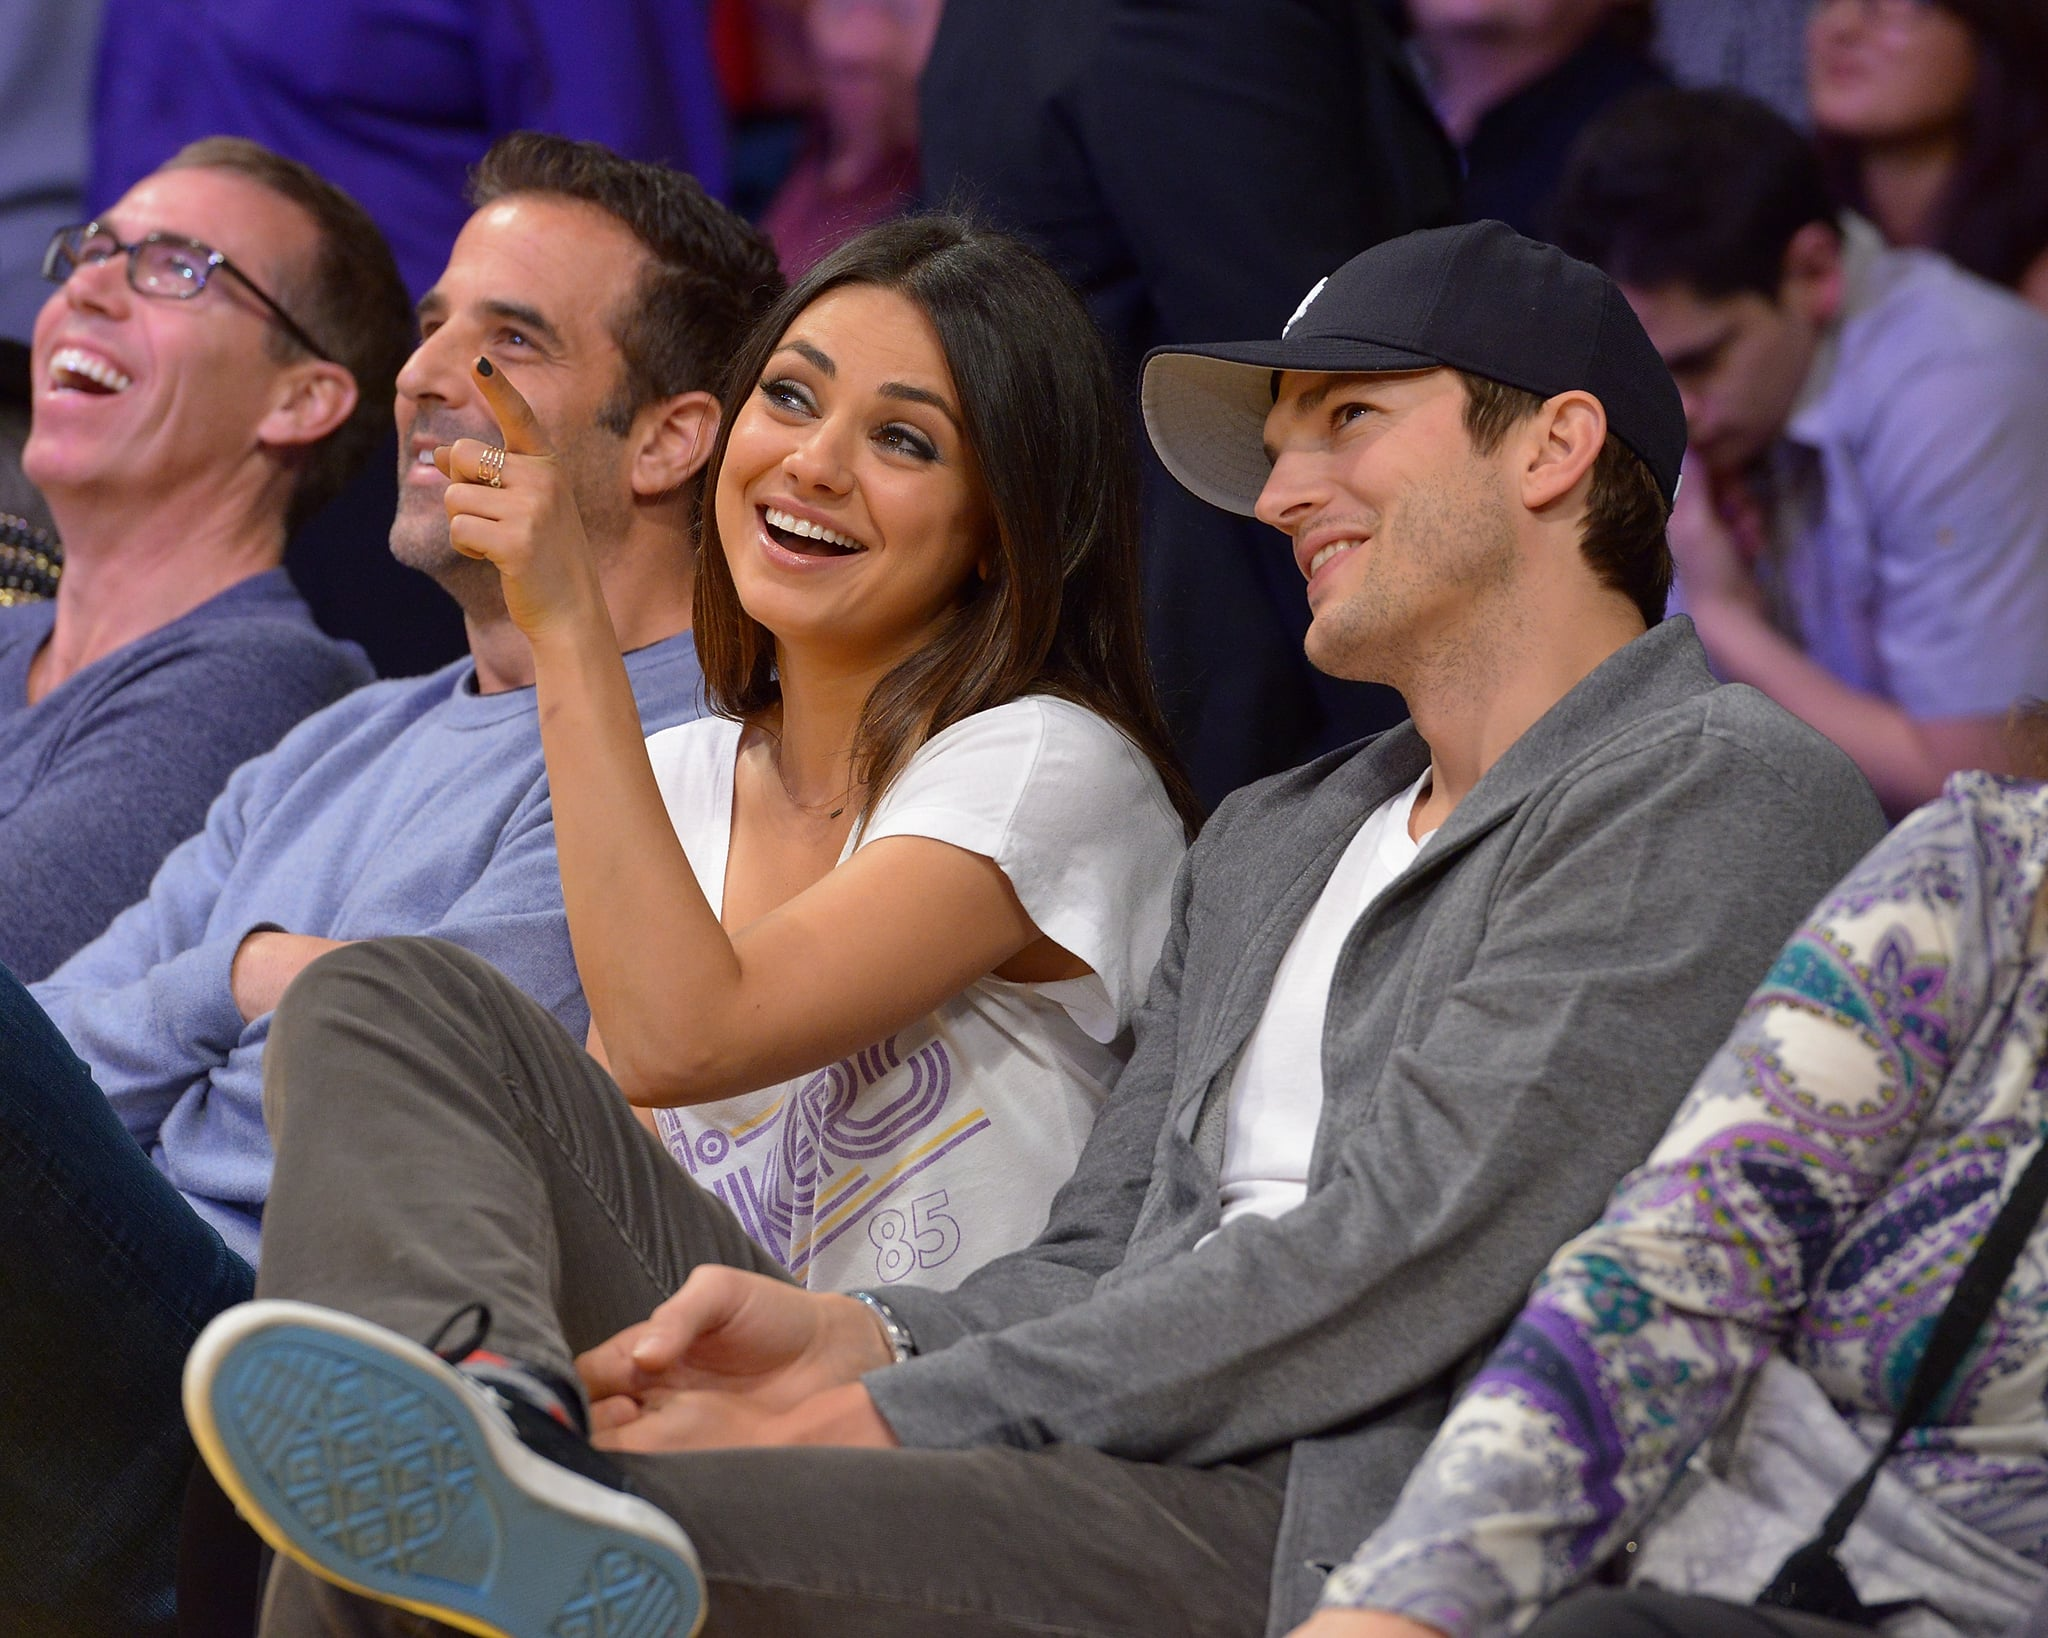 Mila Kunis and Ashton Kutcher checked out the Lakers game together in February 2013.